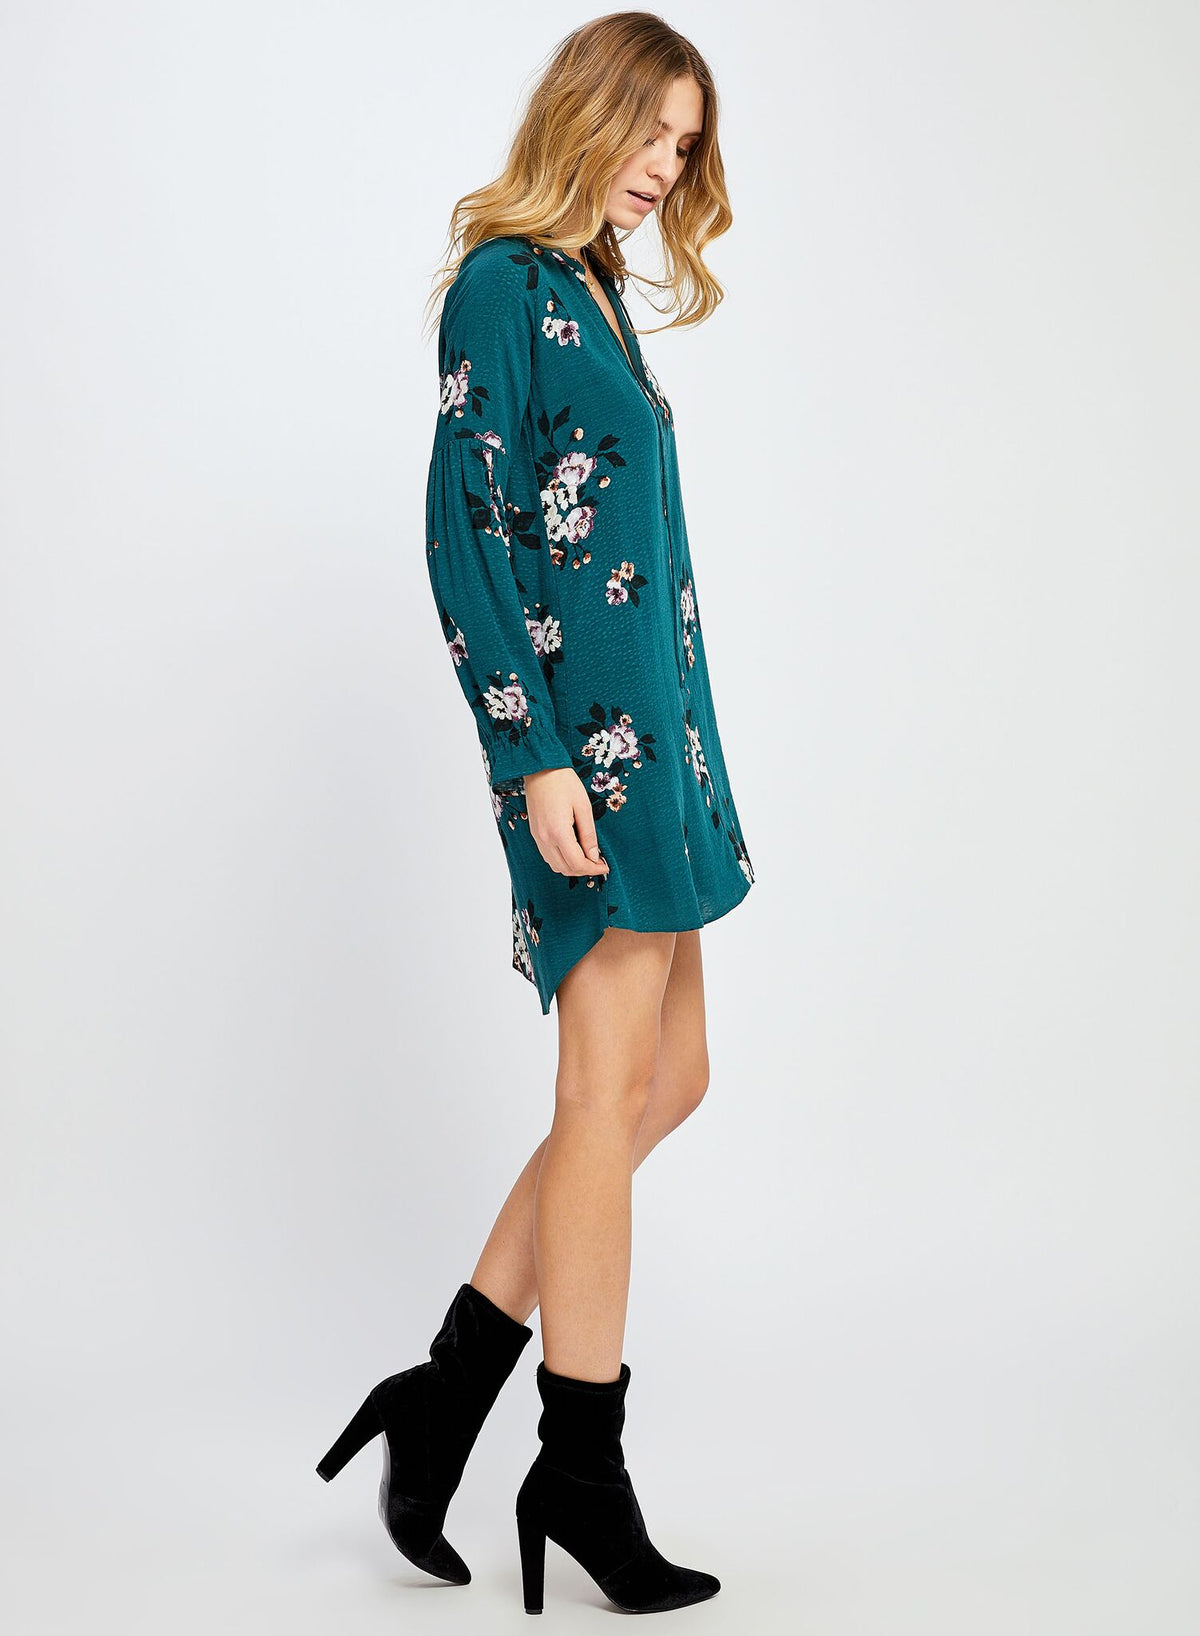 GENTLE FAWN Rosatello Dress